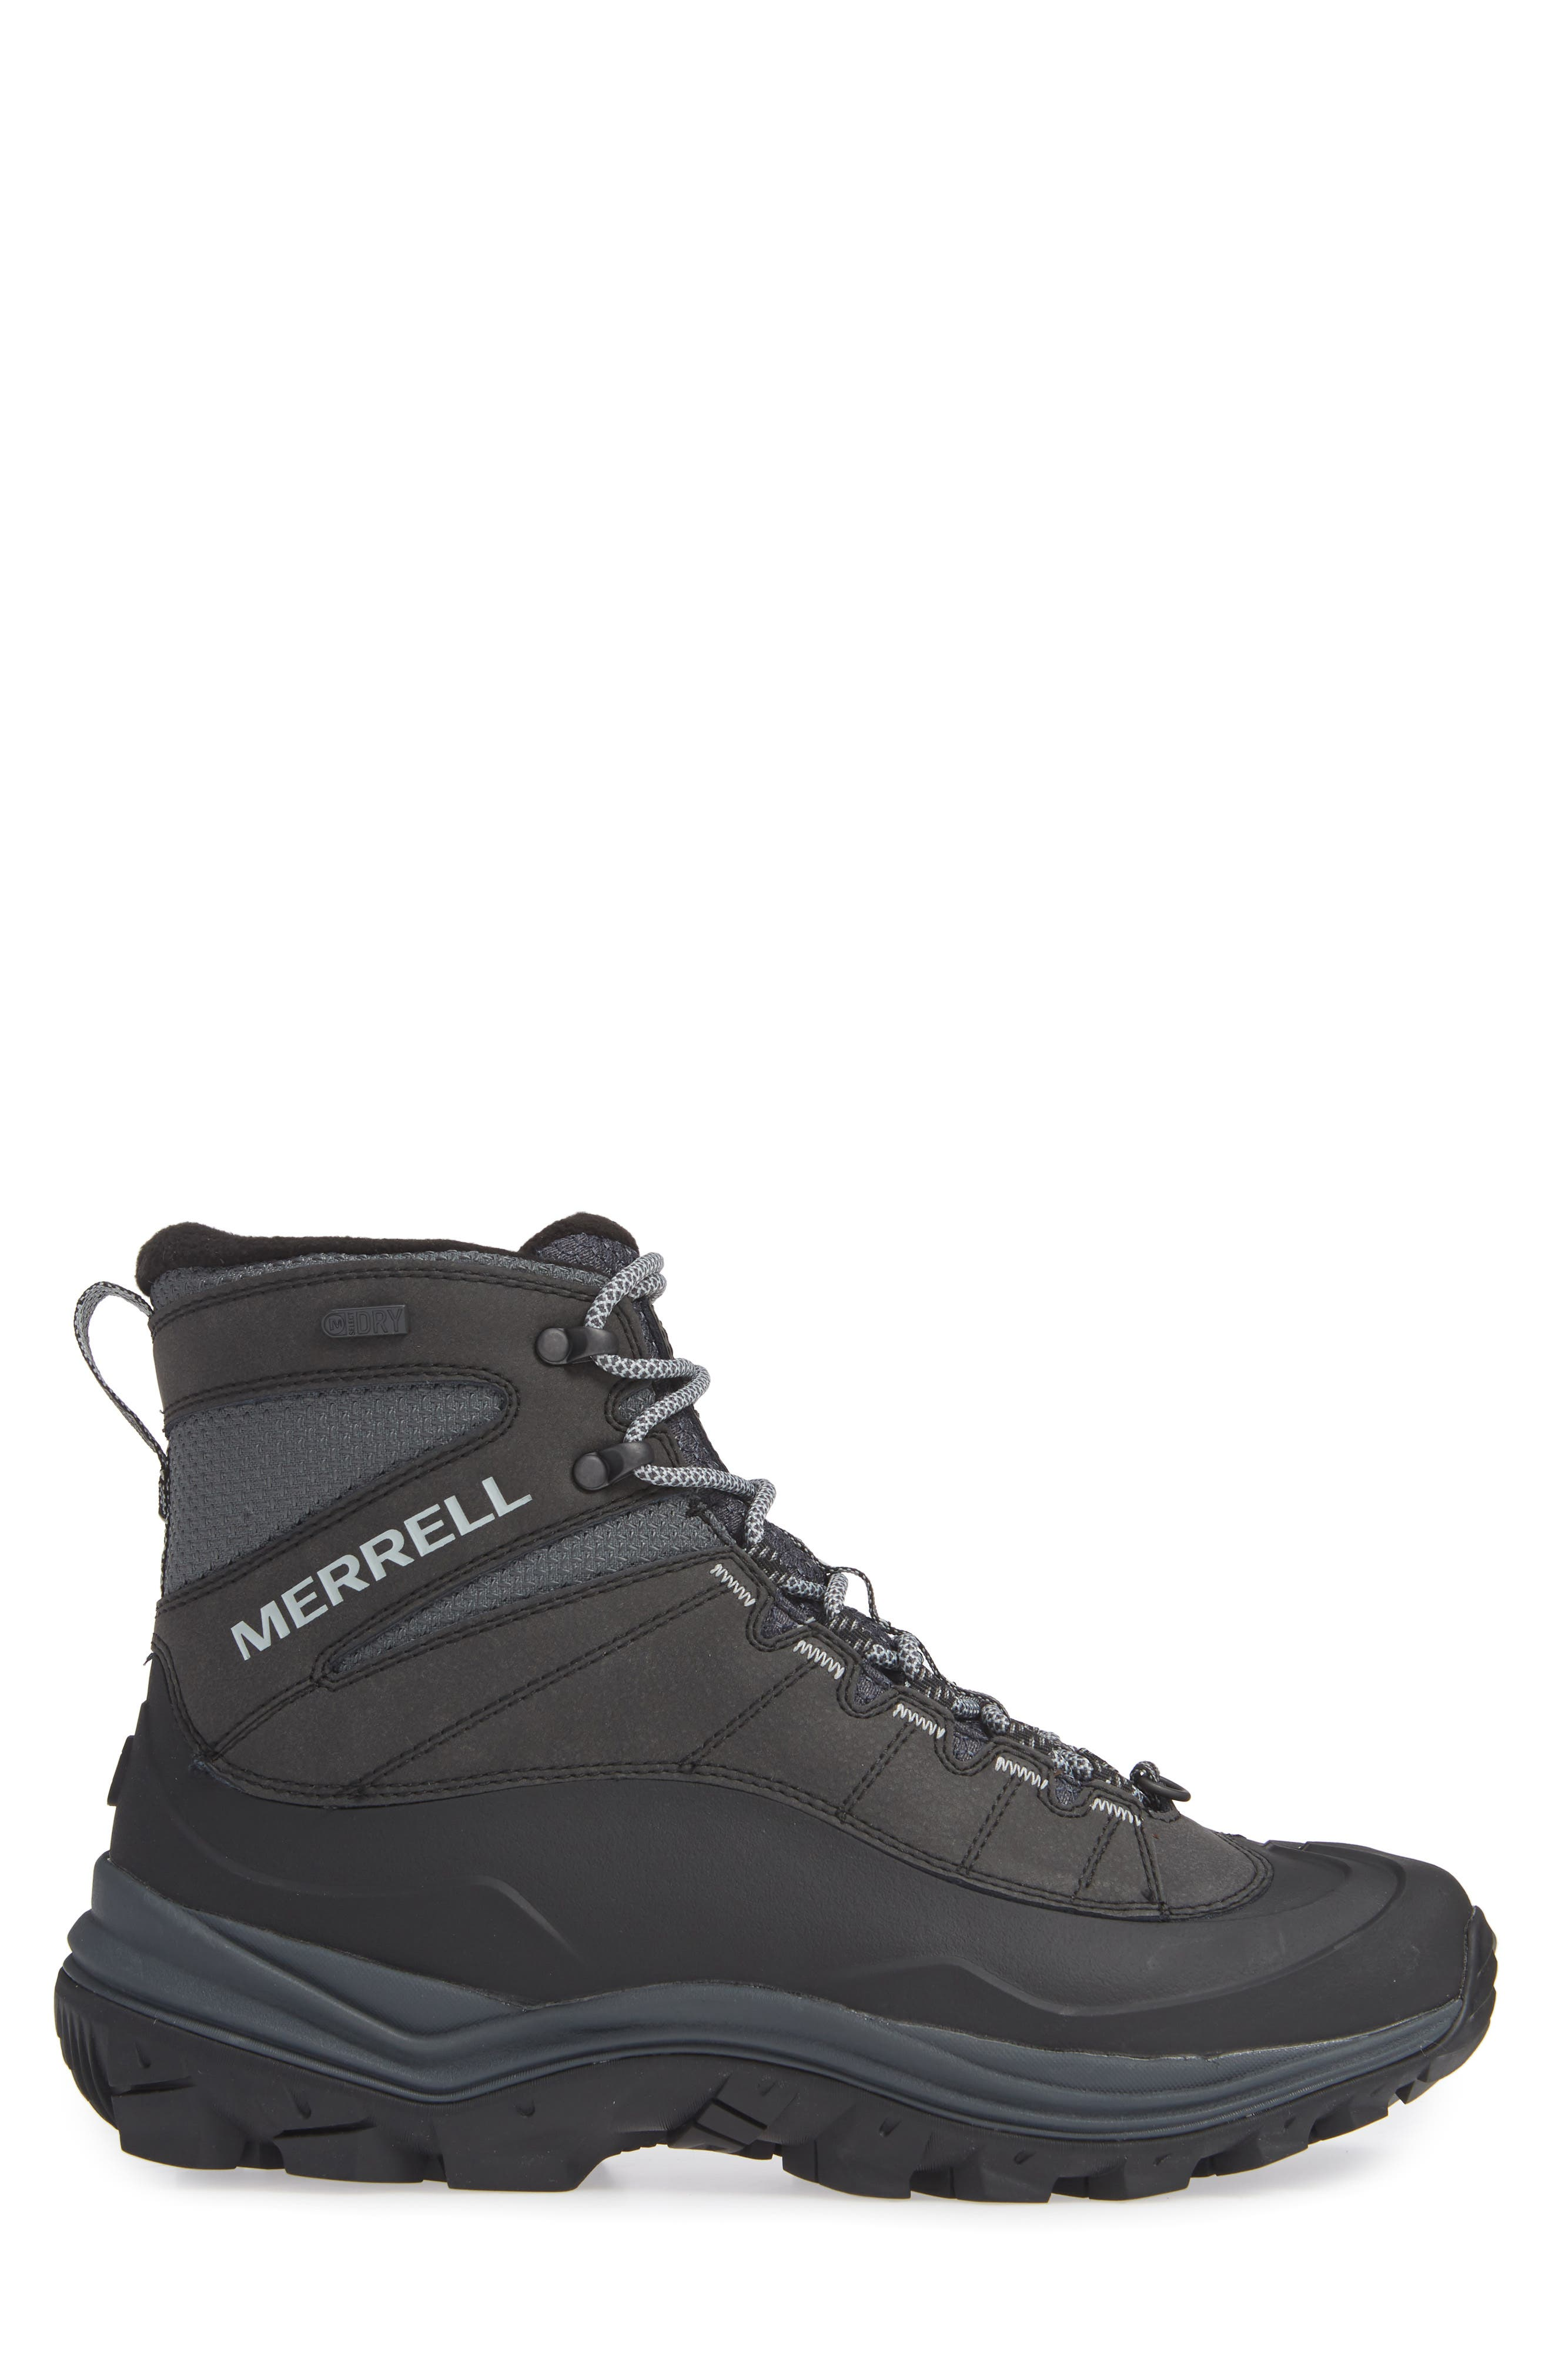 Thermo Chill Waterproof Snow Boot,                             Alternate thumbnail 3, color,                             BLACK